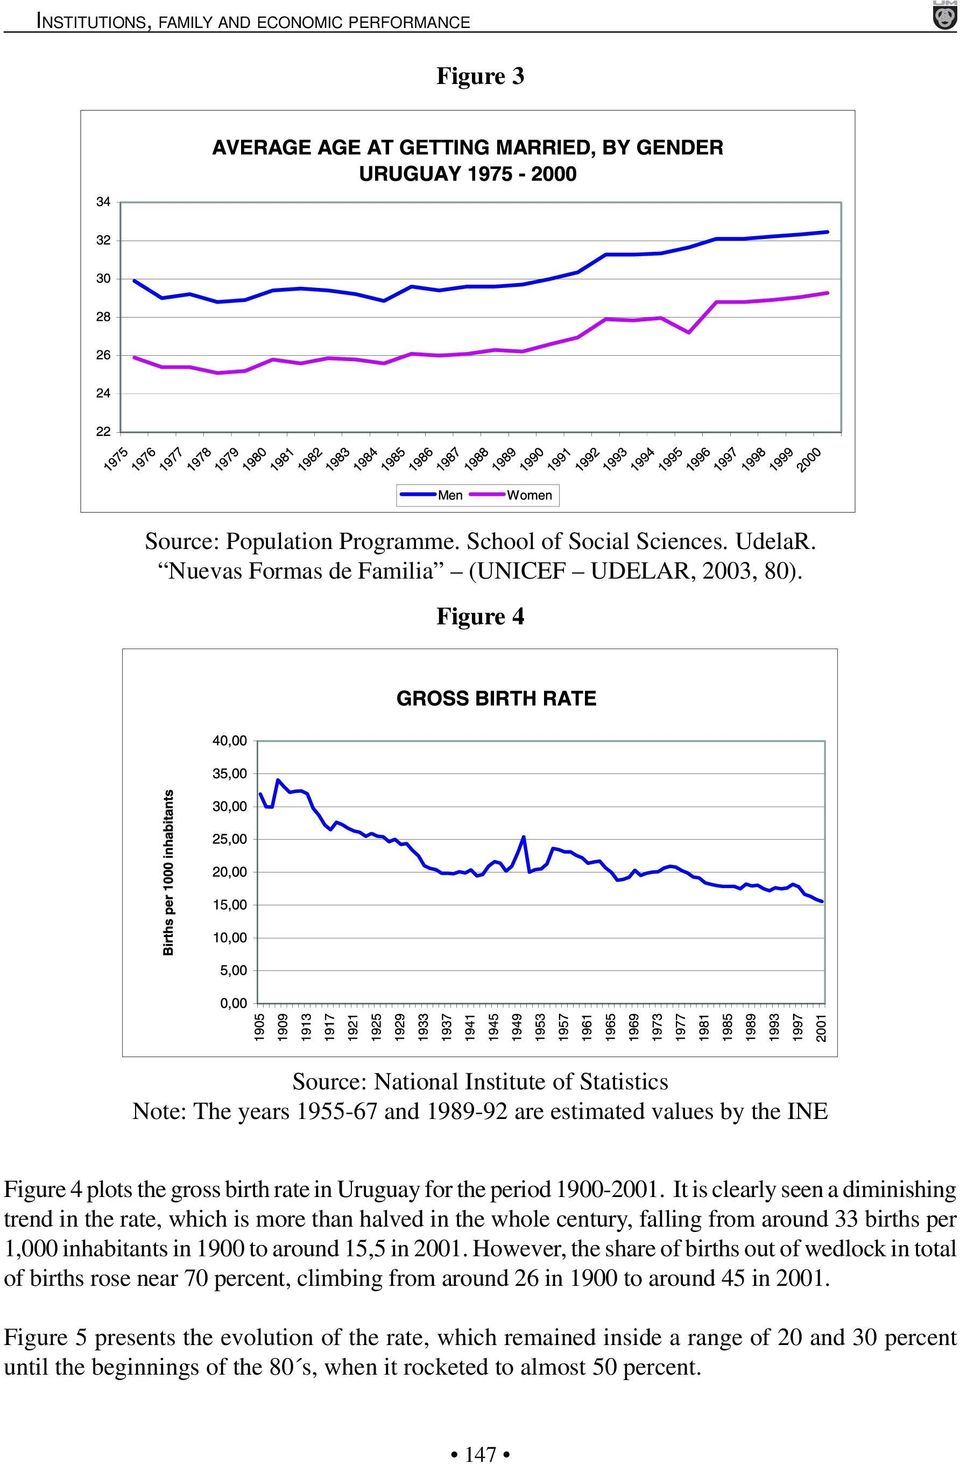 It is clearly seen a diminishing trend in the rate, which is more than halved in the whole century, falling from around 33 births per 1,000 inhabitants in 1900 to around 15,5 in 2001.